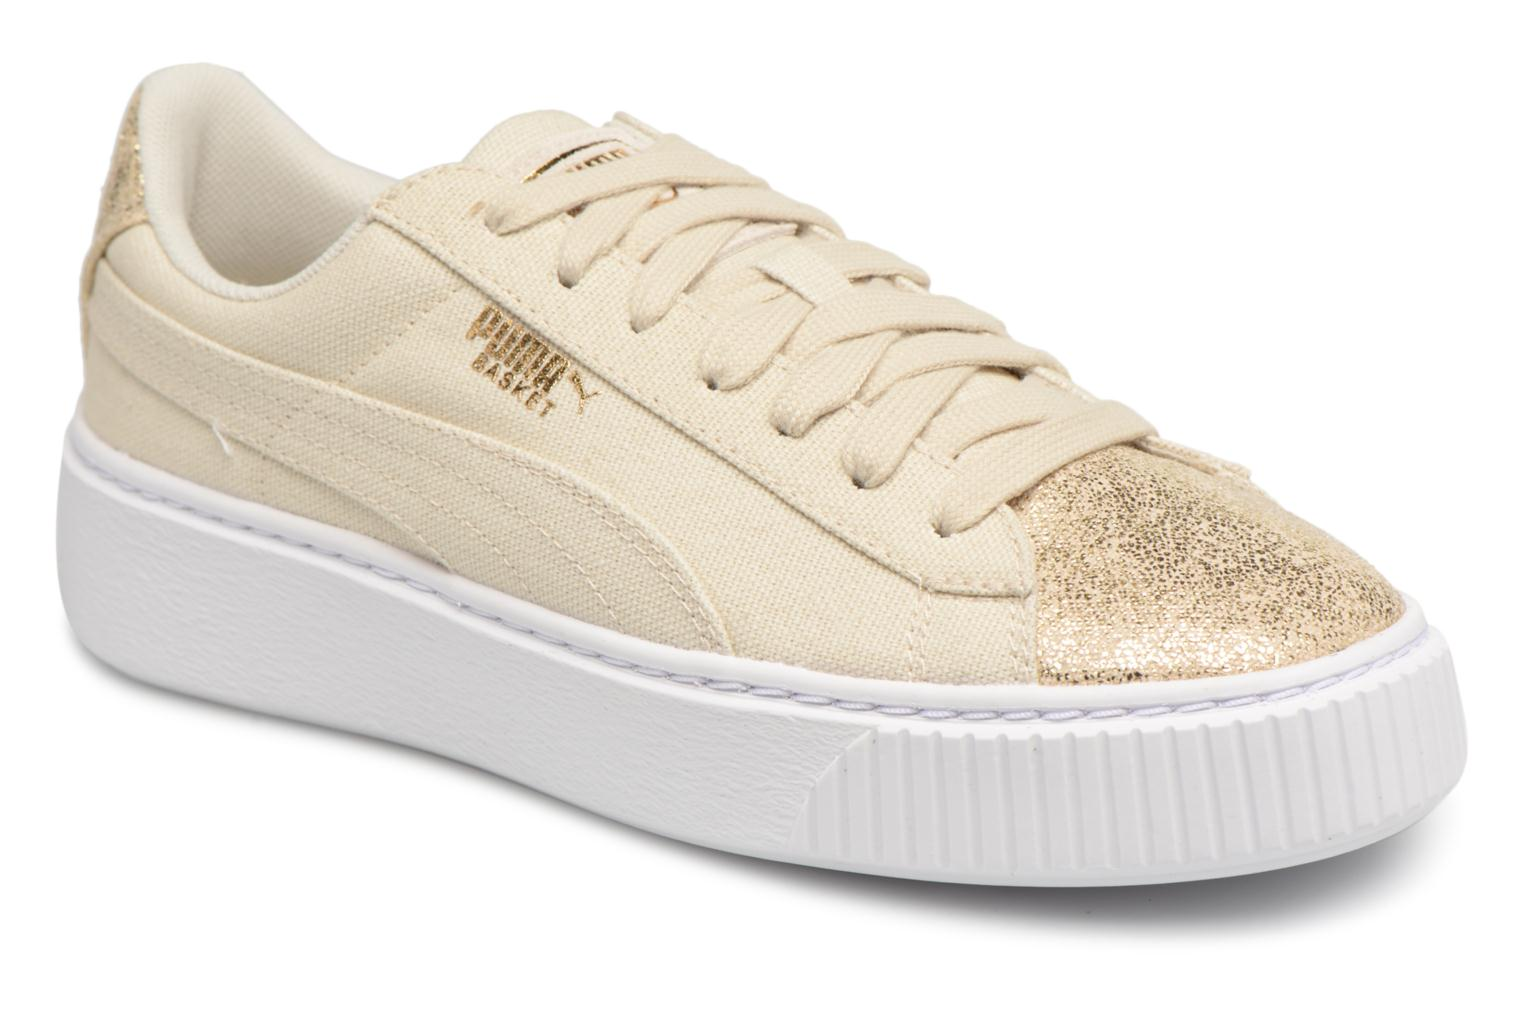 Birch-Puma Team Gold Puma Basket Platform Canvas Wns (Or et bronze)